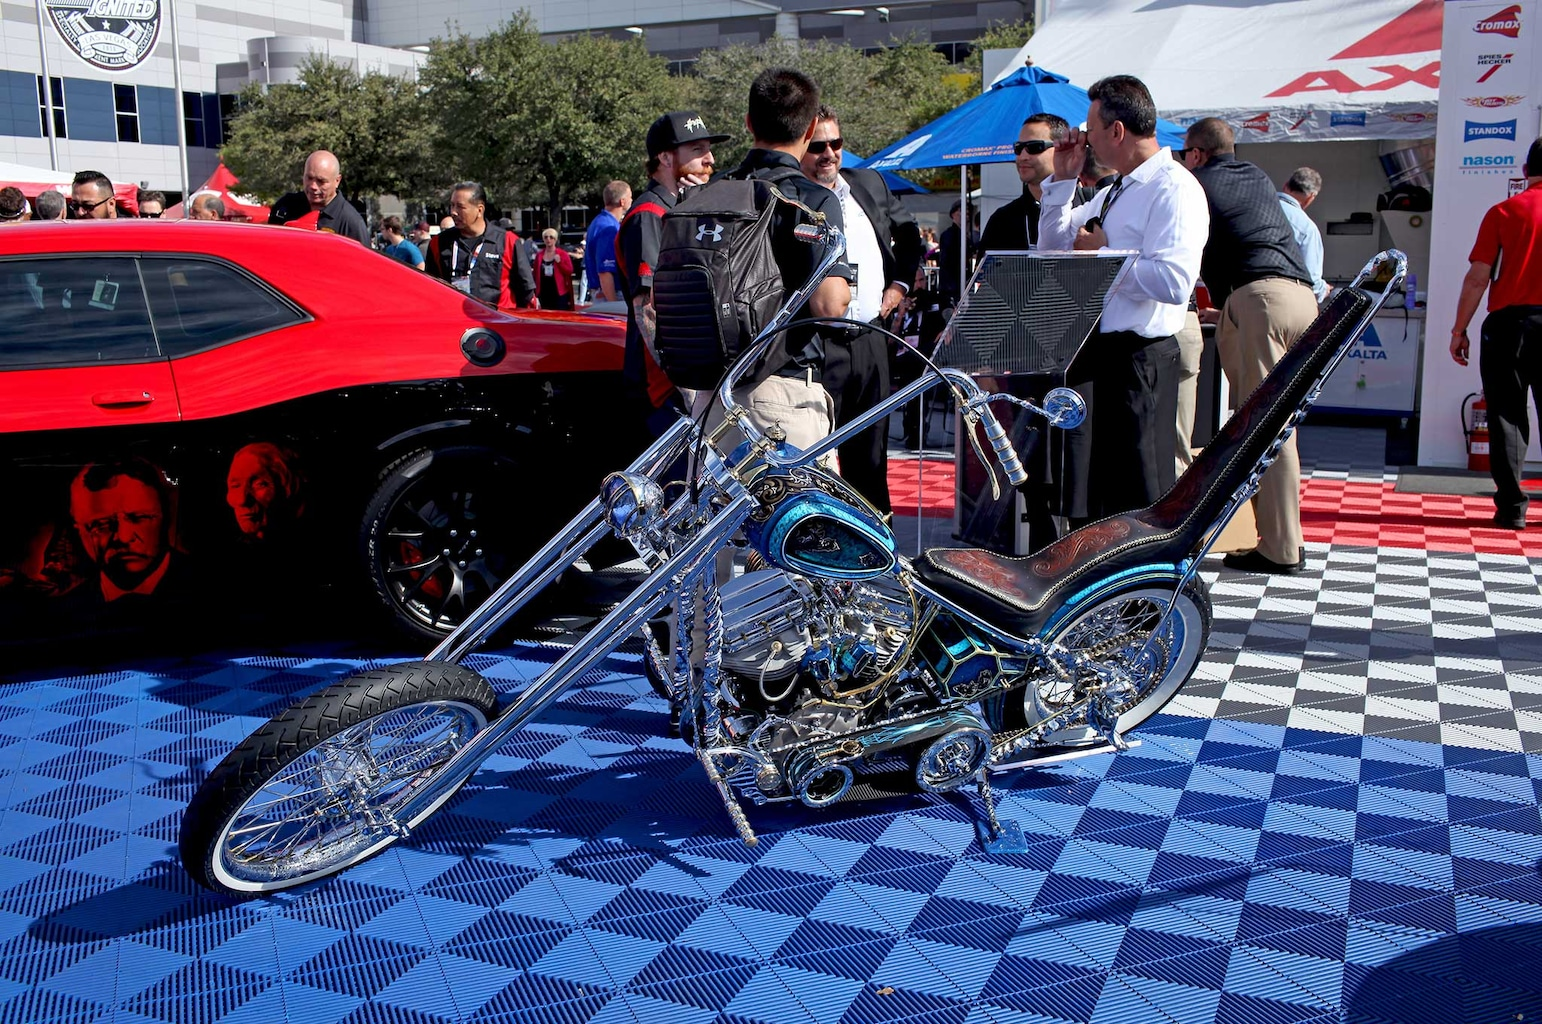 021 lowriders at sema 2015 phillipe coquard 1954 harley panhead